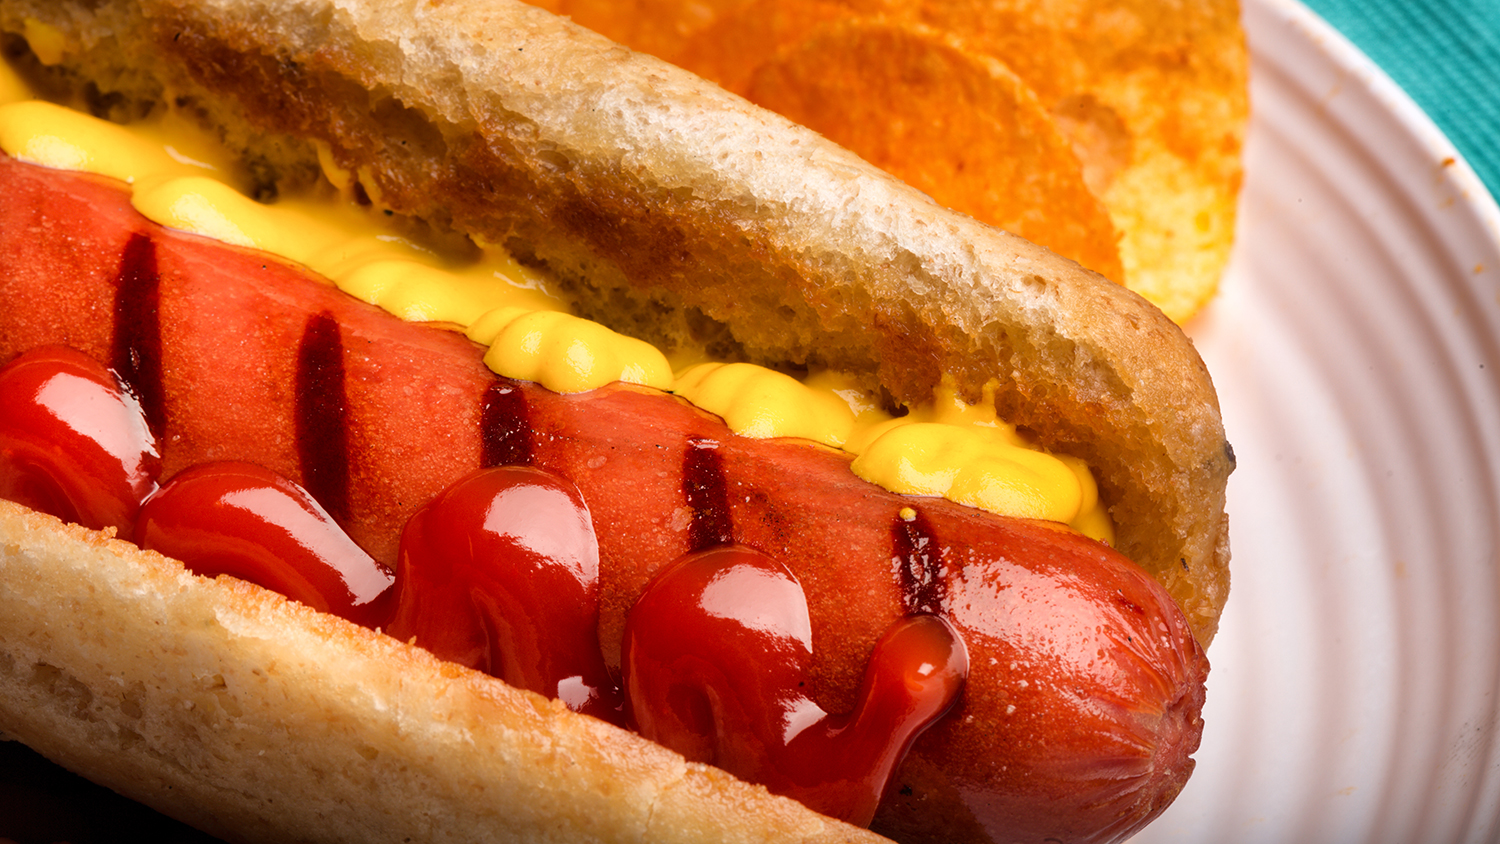 Is a Hot Dog a Sandwich? An Oscar Mayer Rep Says Yes